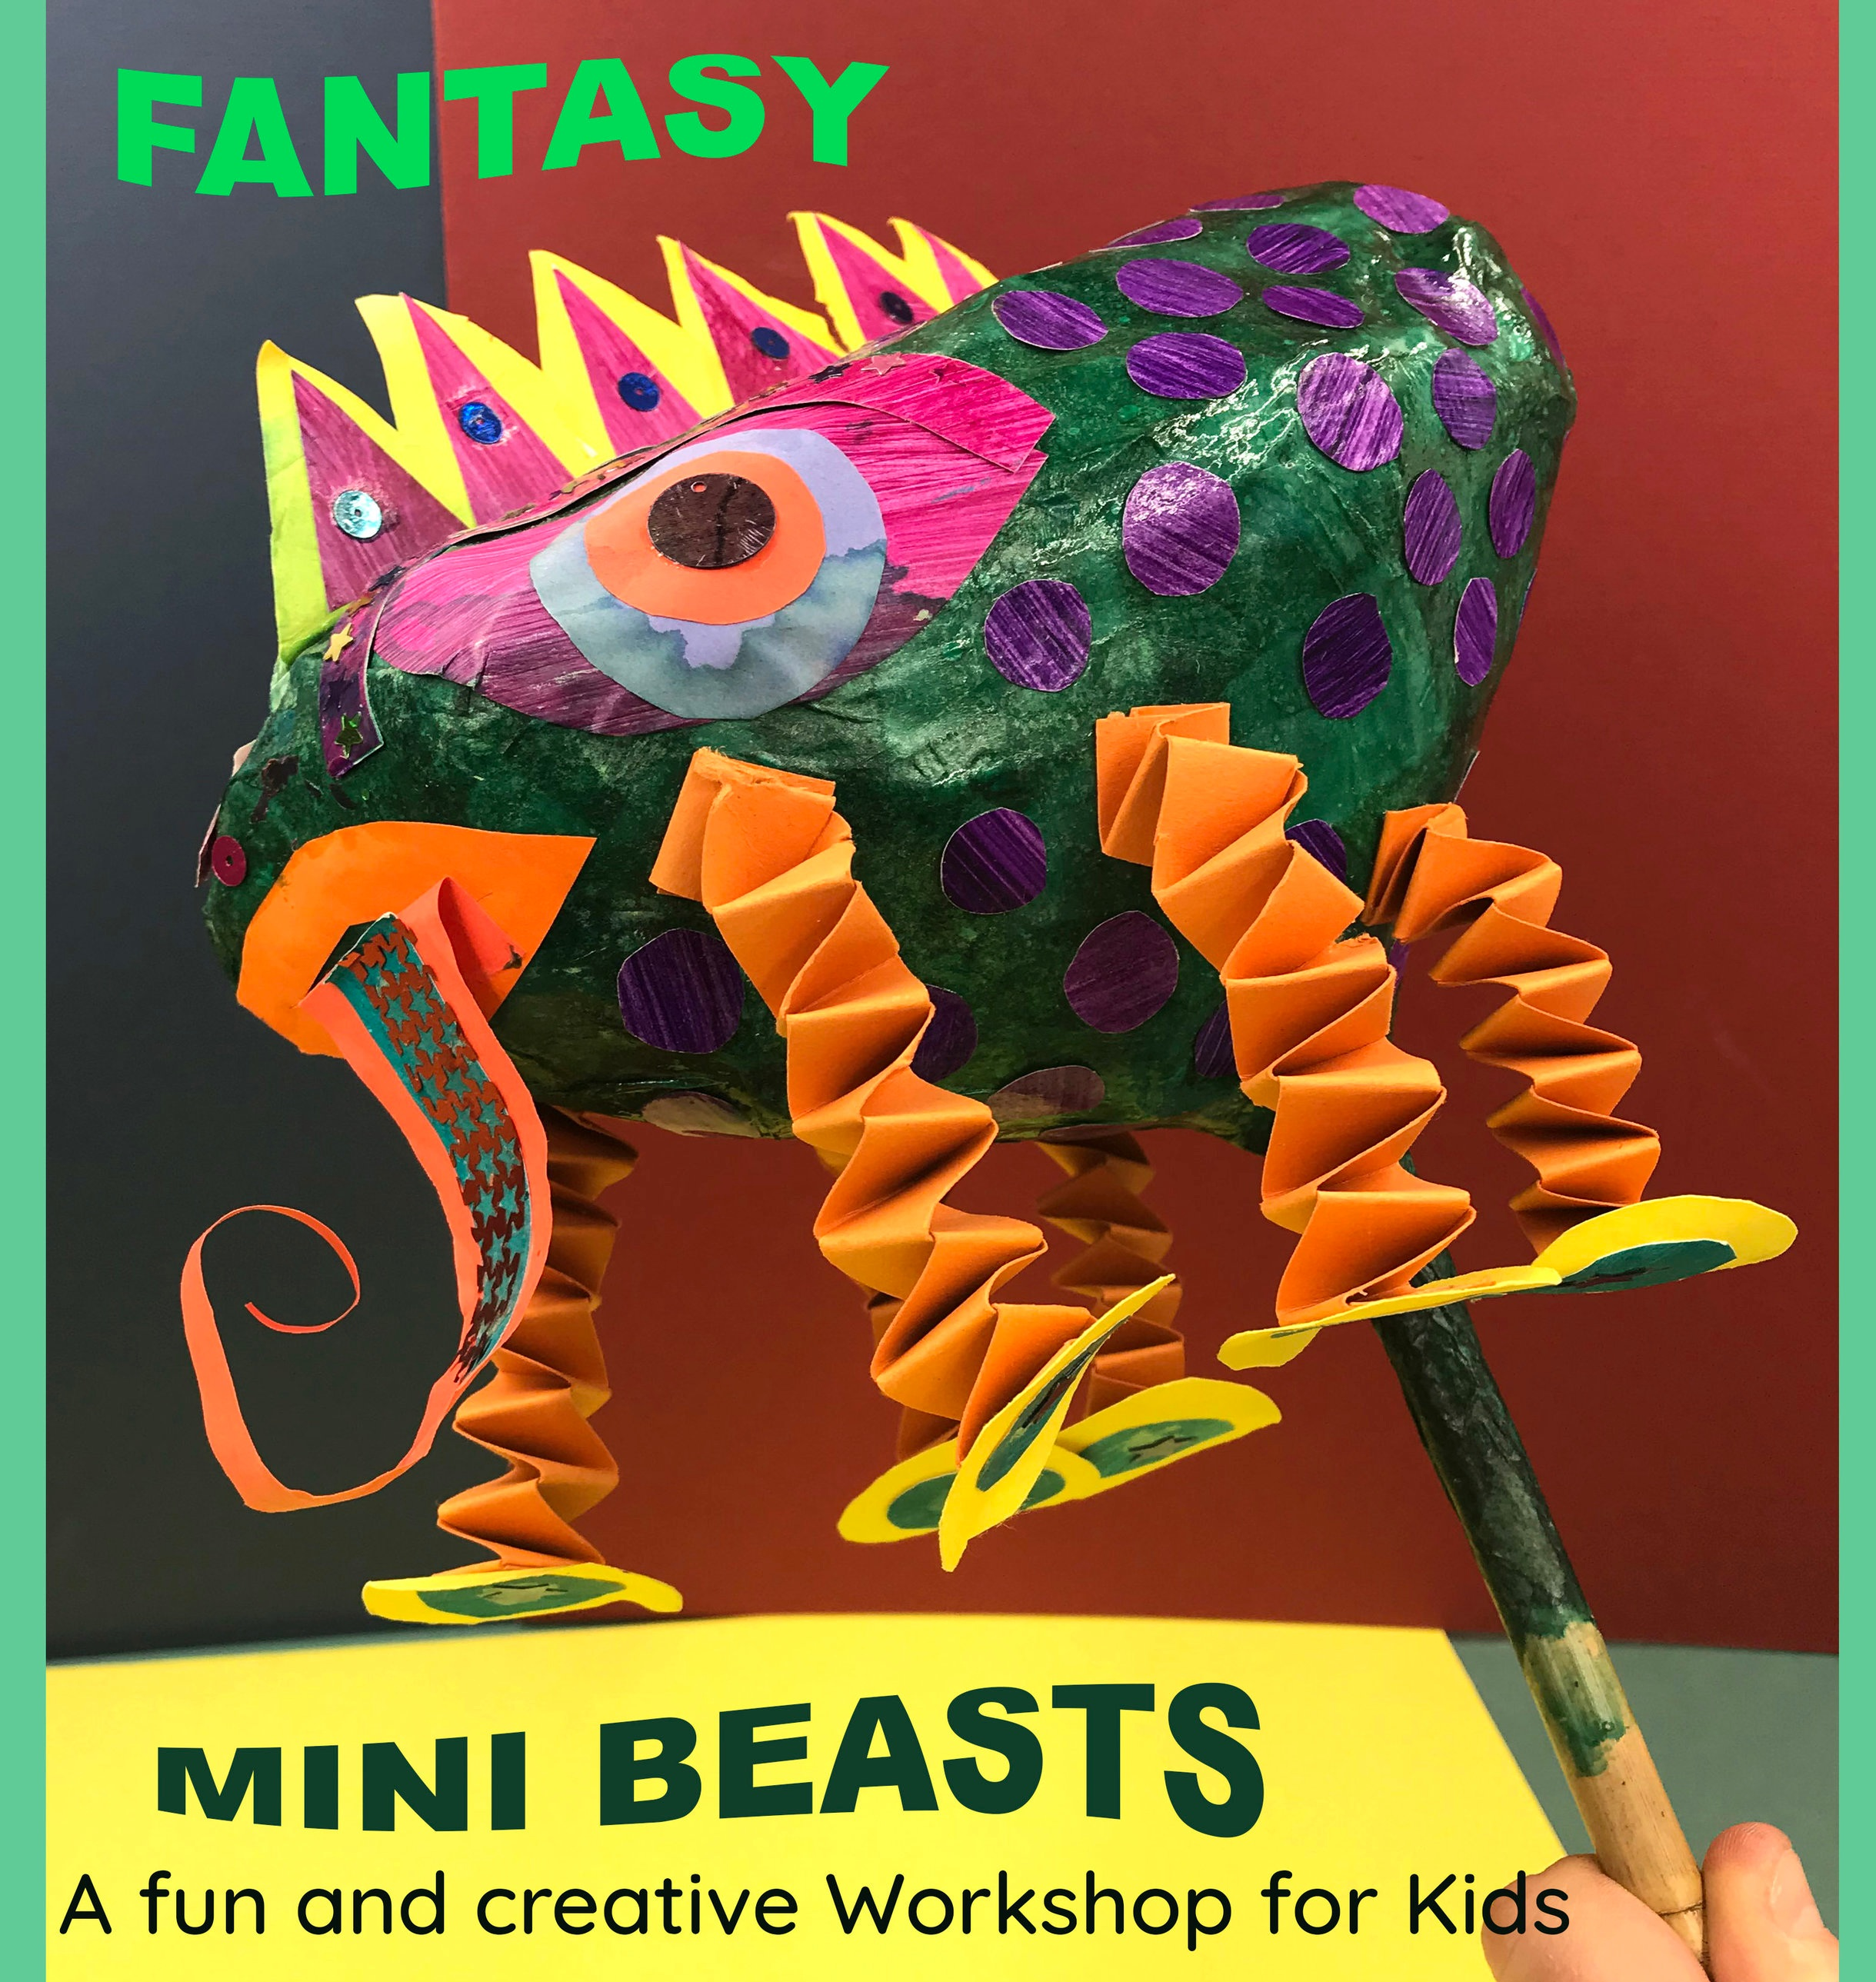 Fantasy+mini+beasts+2.jpg